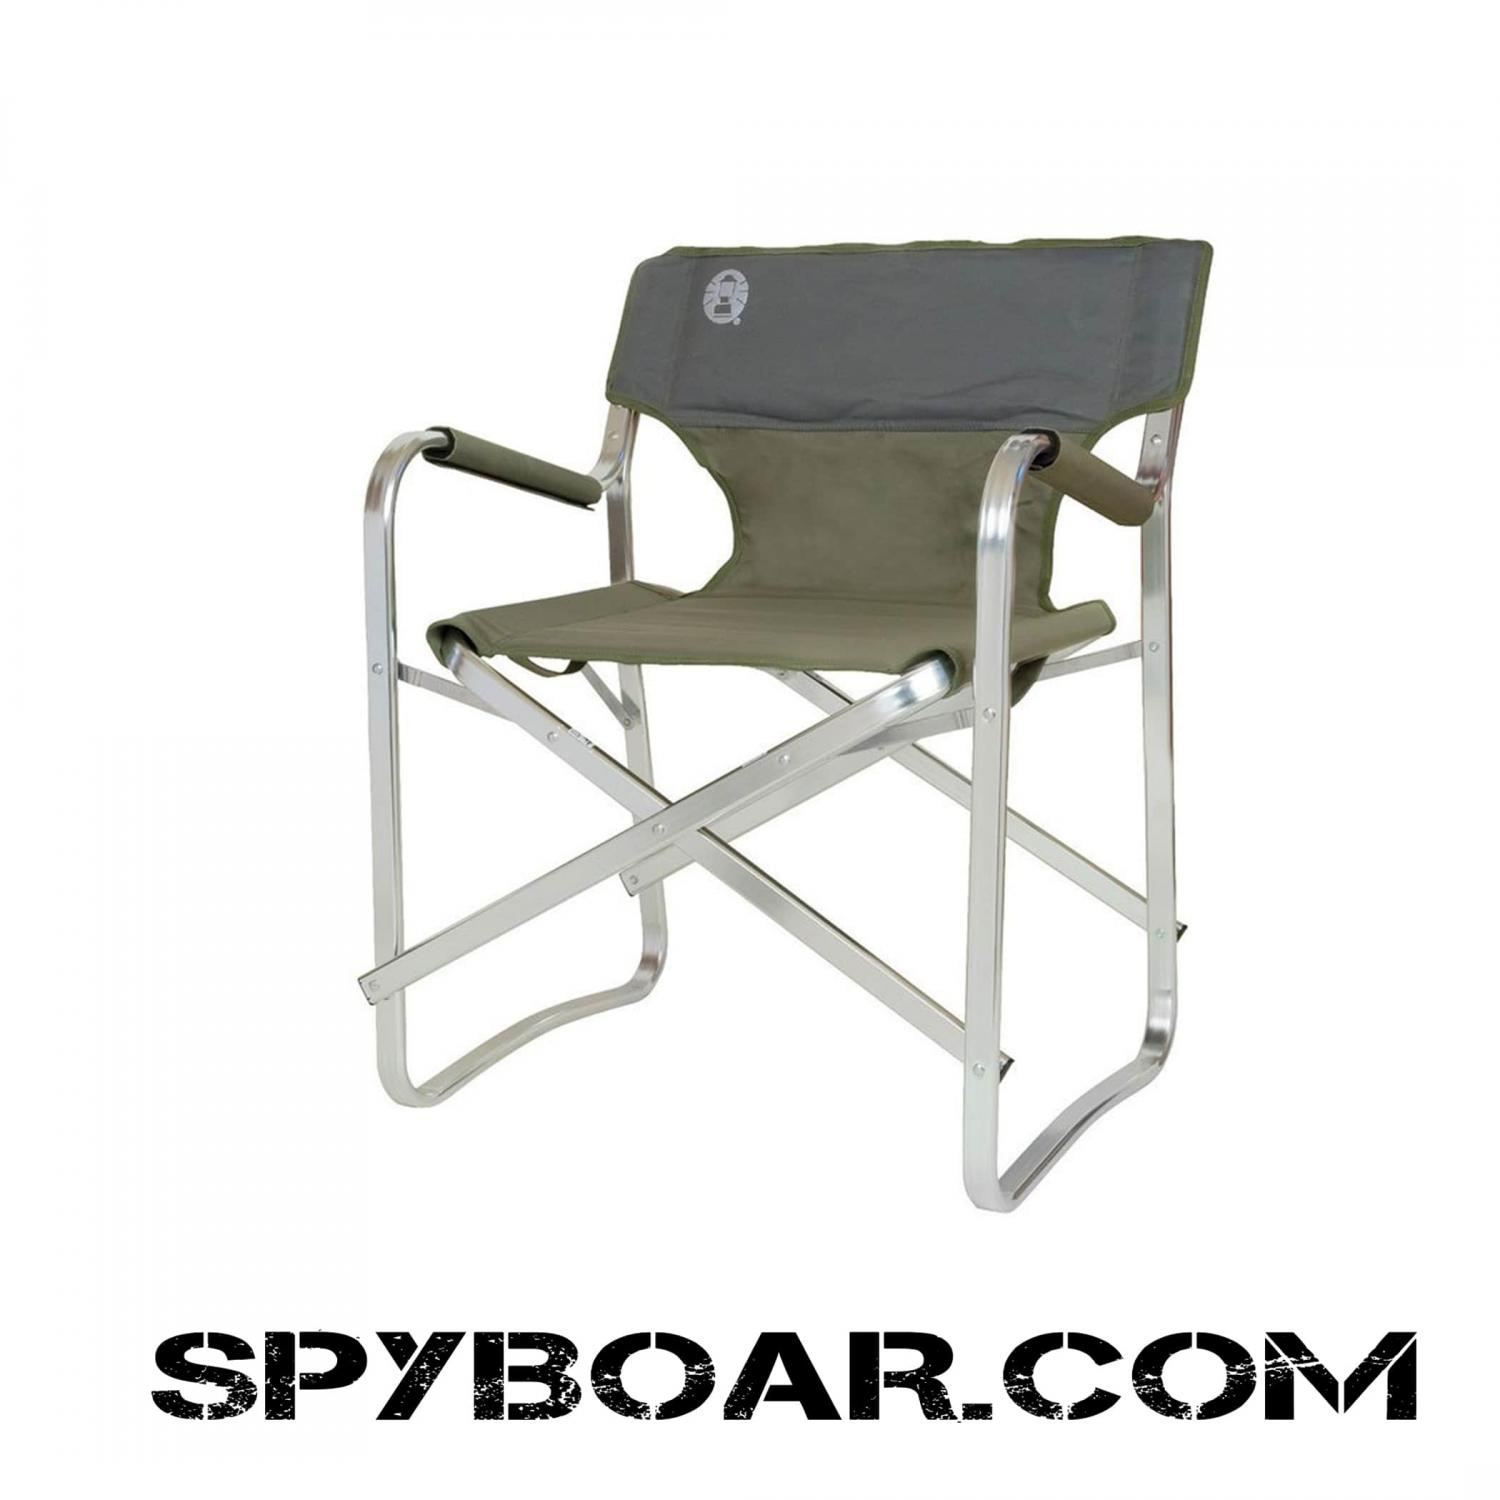 Aluminum Folding Chair Folding Chair Coleman Deck High Quality Steel And Aluminum